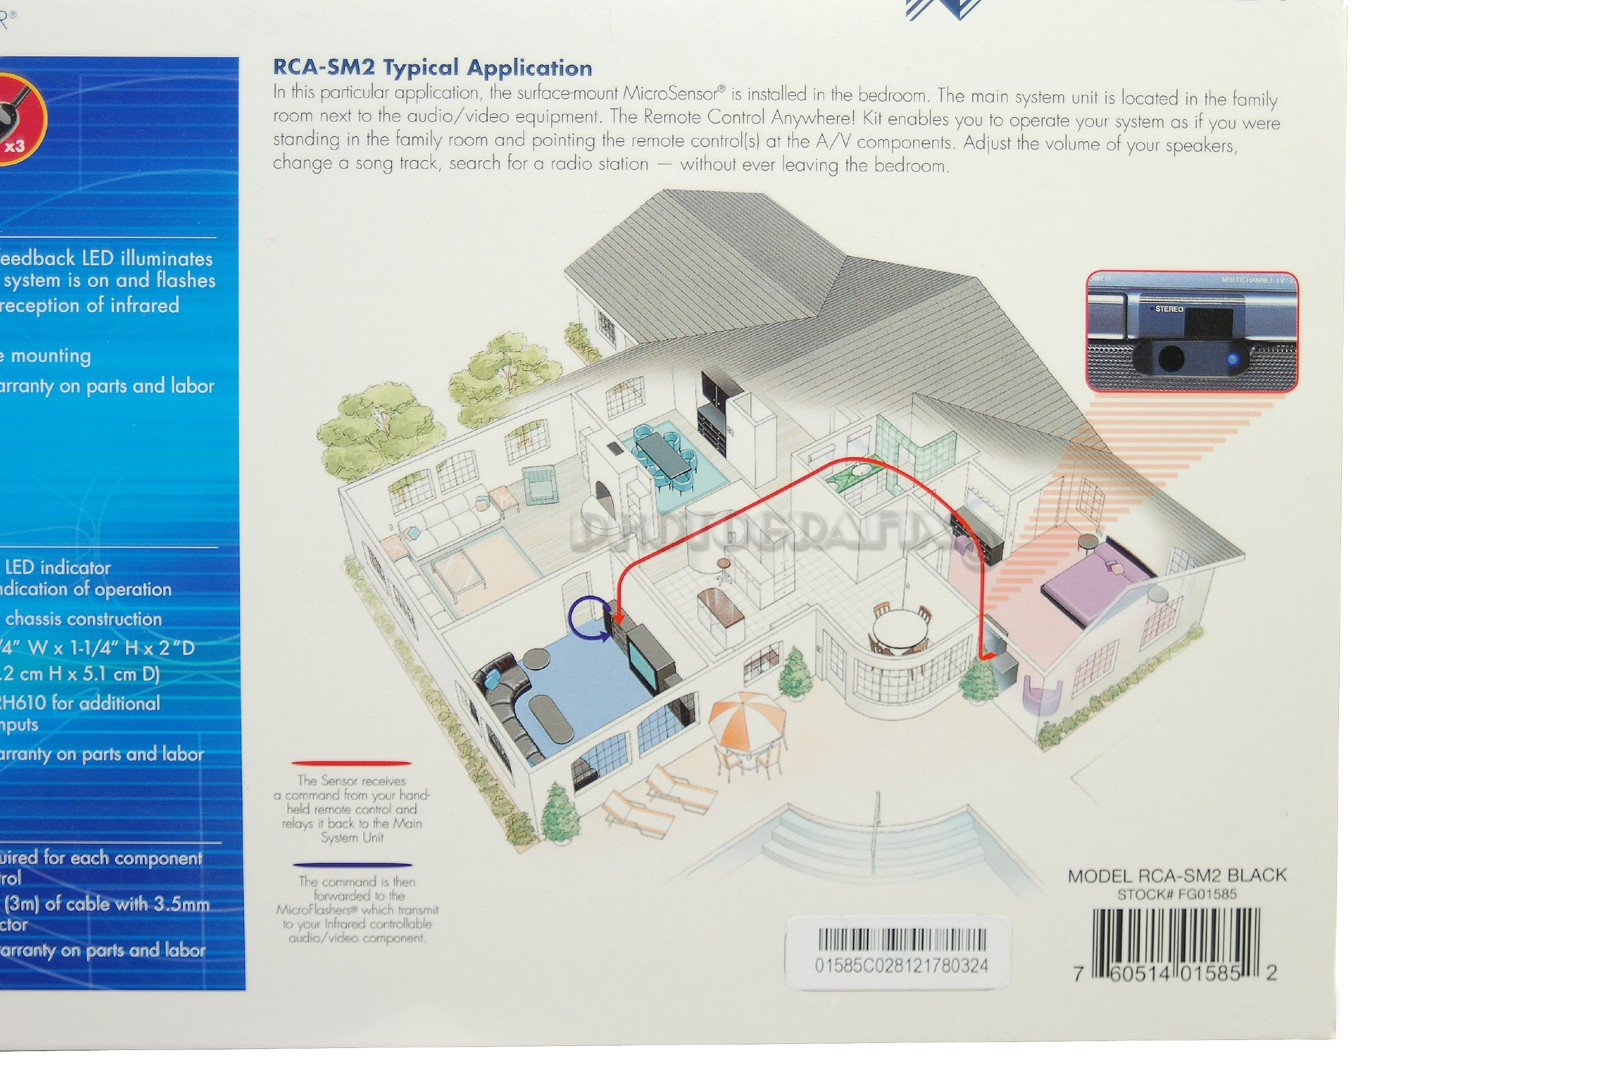 niles rca sm2 remote control anywhere kit with surface mount ir microsensor niles rca sm2 wiring diagram [ 1600 x 1071 Pixel ]